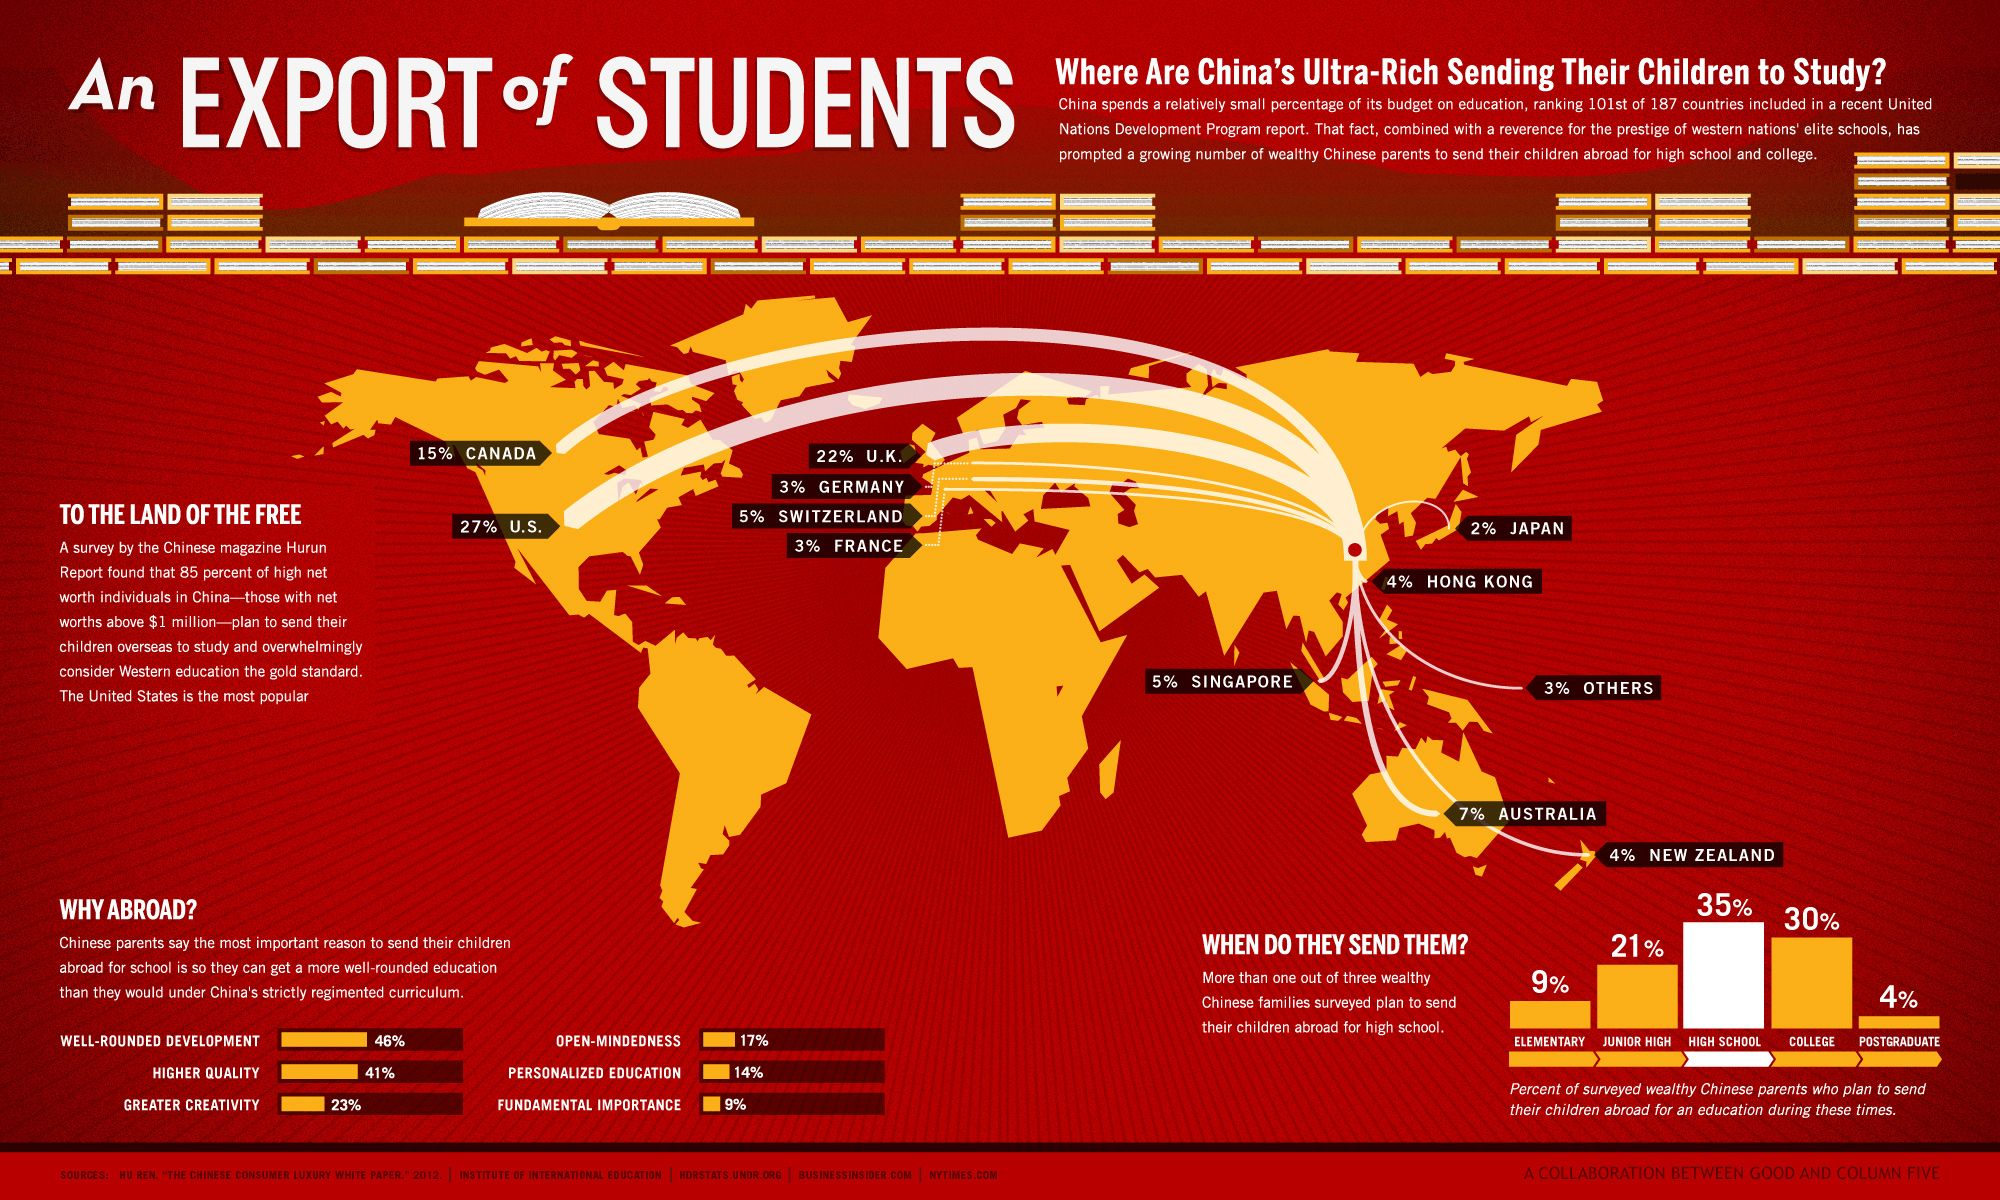 an-export-of-students-where-are-chinas-ultra-rich-sending